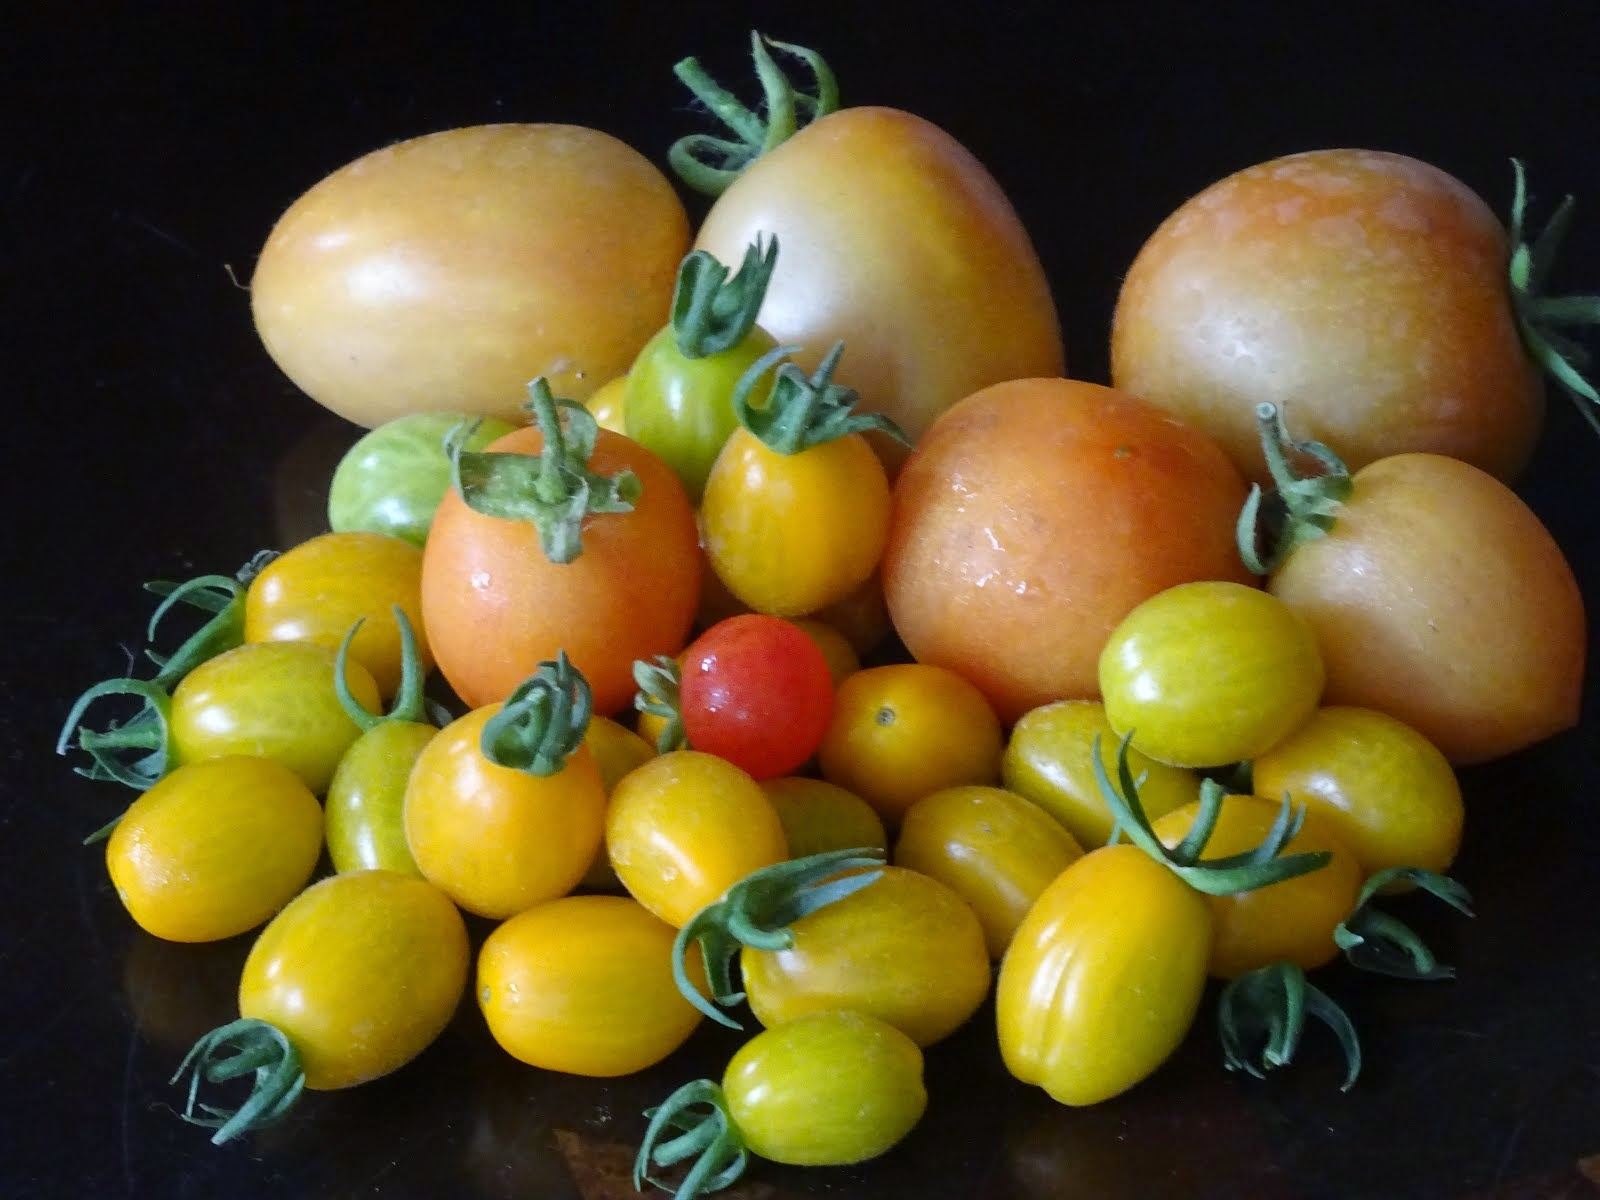 Plum &other tomatoes grown this year